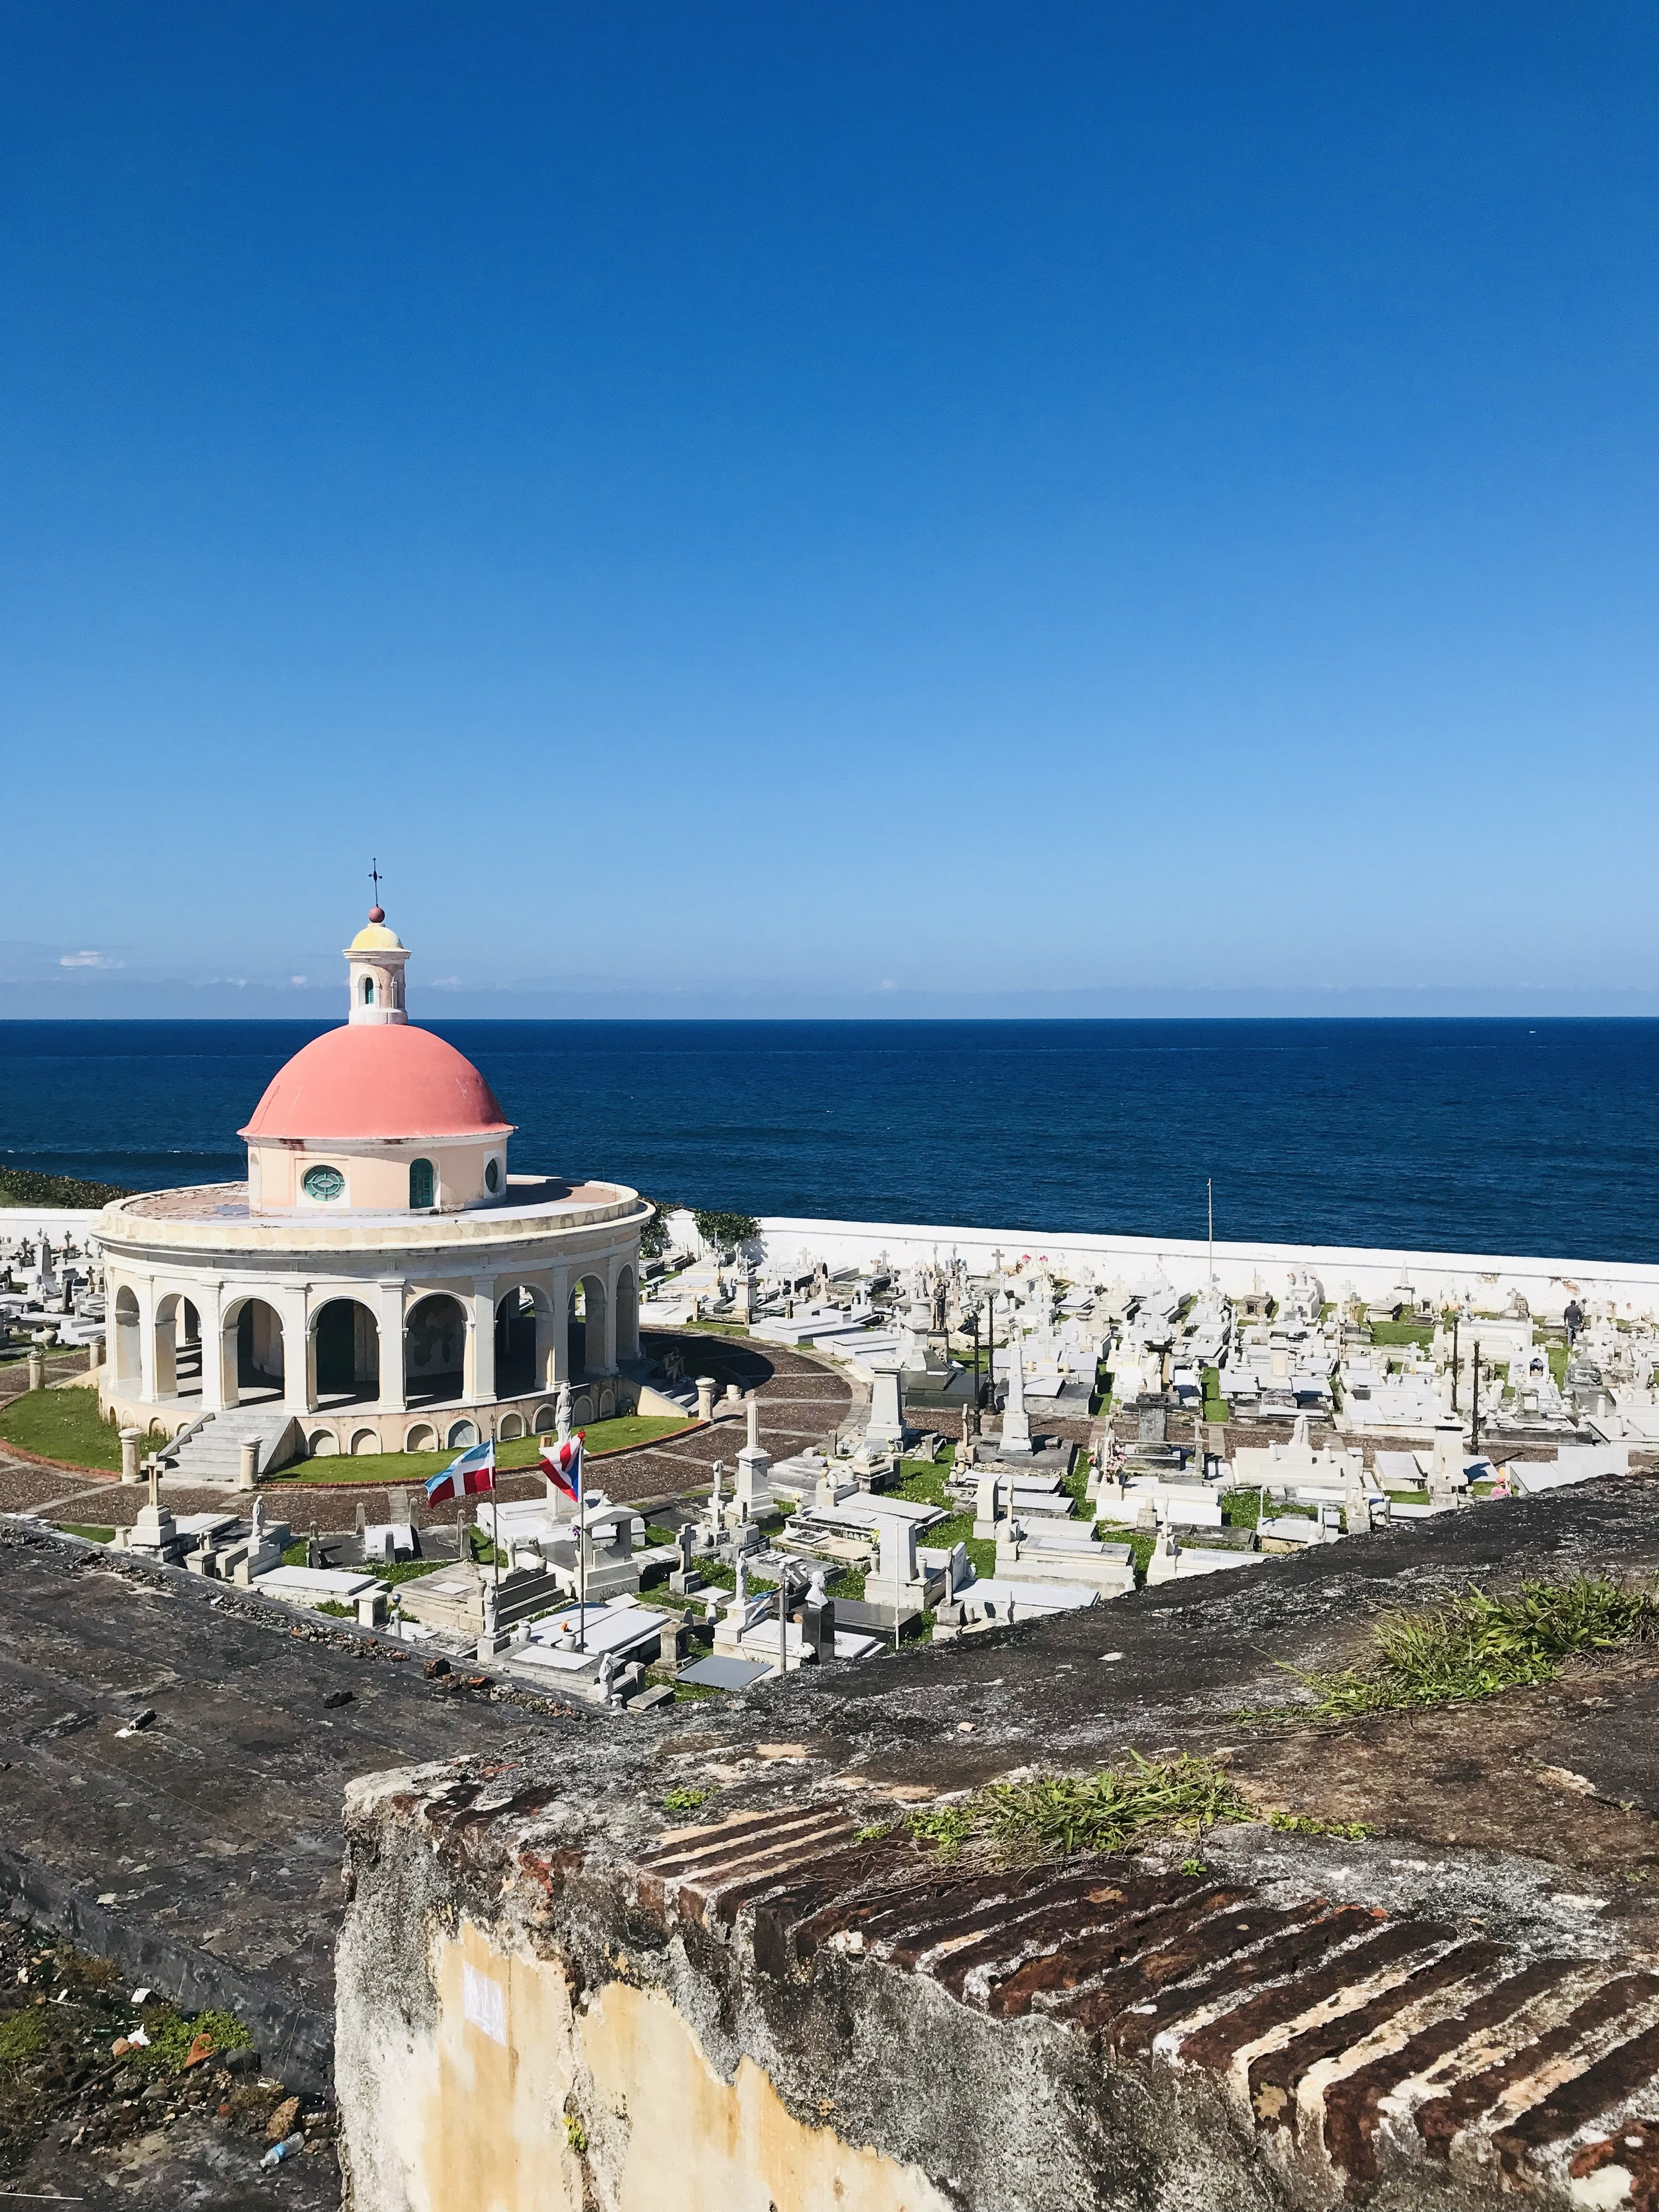 """- Also known as the """"forts"""" is a 16th century historical site with breathtaking views. The fortification, also referred to as el Morro or 'the promontory,' was designed to guard the entrance to the San Juan Bay, and defend the Spanish colonial port city of San Juan from seaborne enemies. (source: Wikipedia)"""